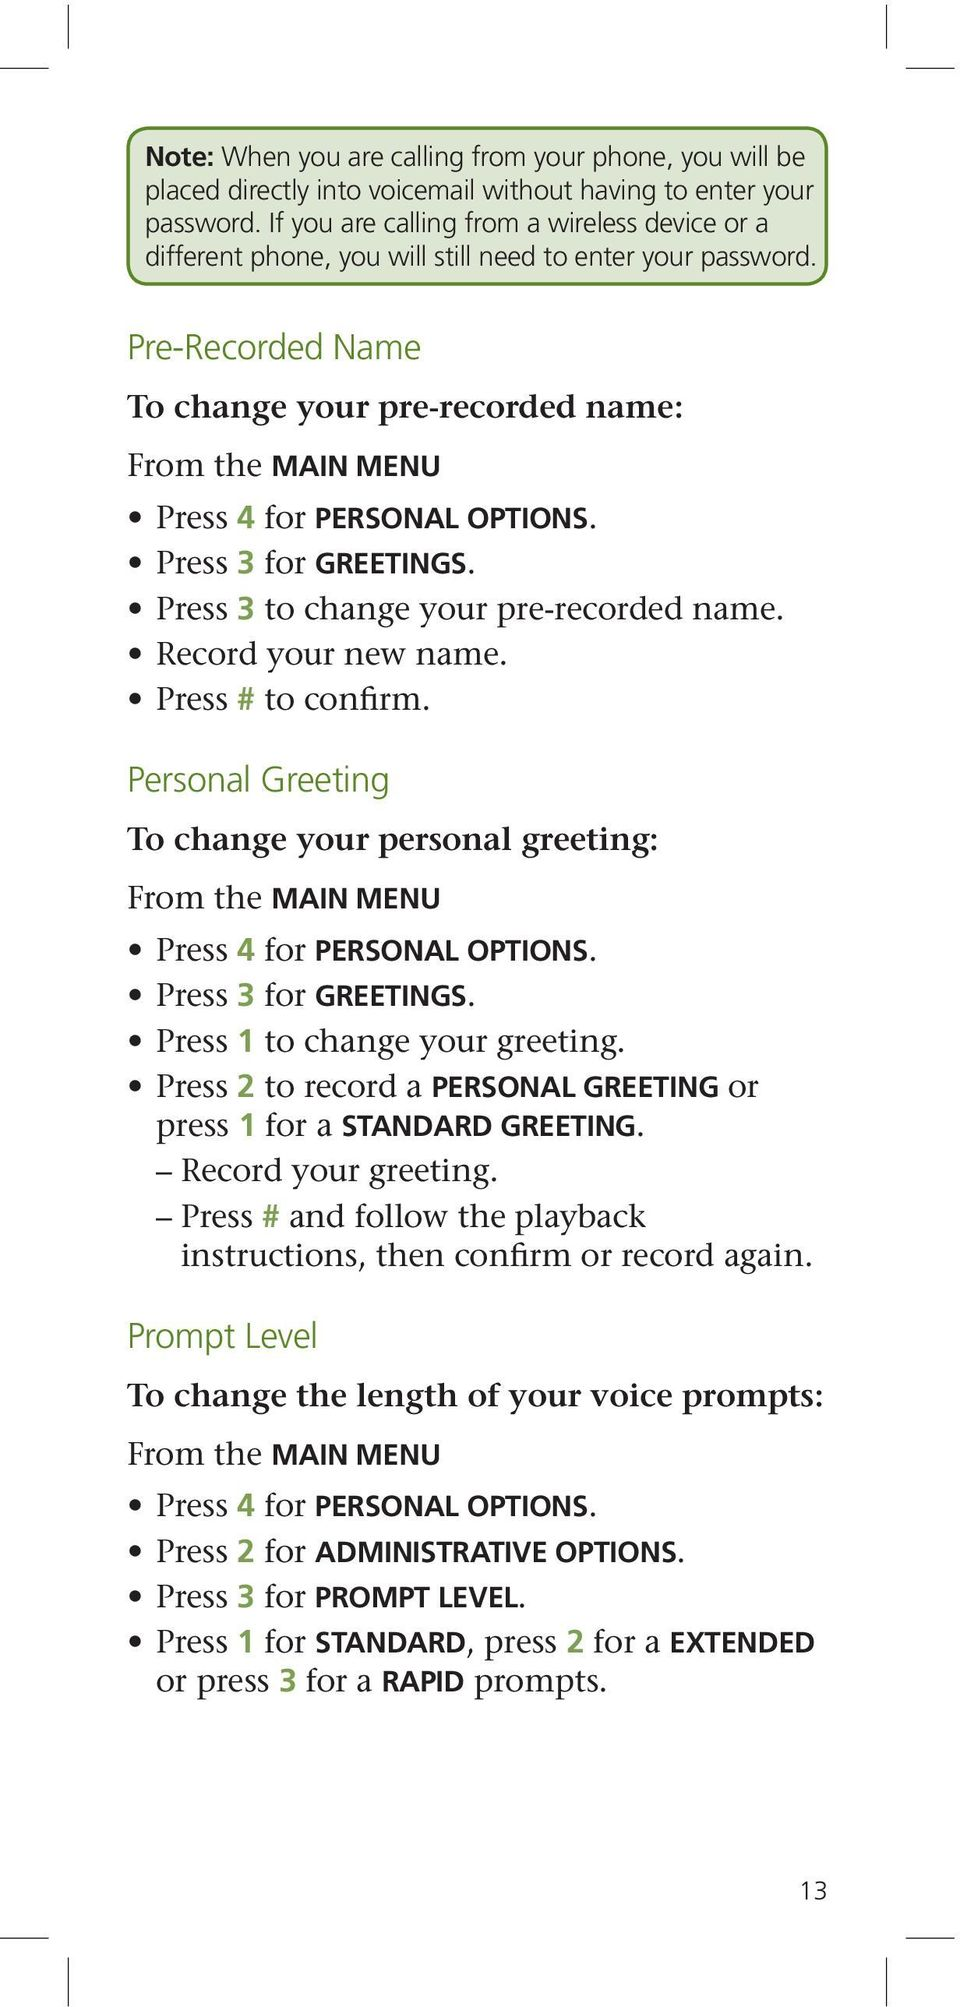 Pre-Recorded Name To change your pre-recorded name: From the MAIN MENU Press 4 for PERSONAL OPTIONS. Press 3 for GREETINGS. Press 3 to change your pre-recorded name. Record your new name.